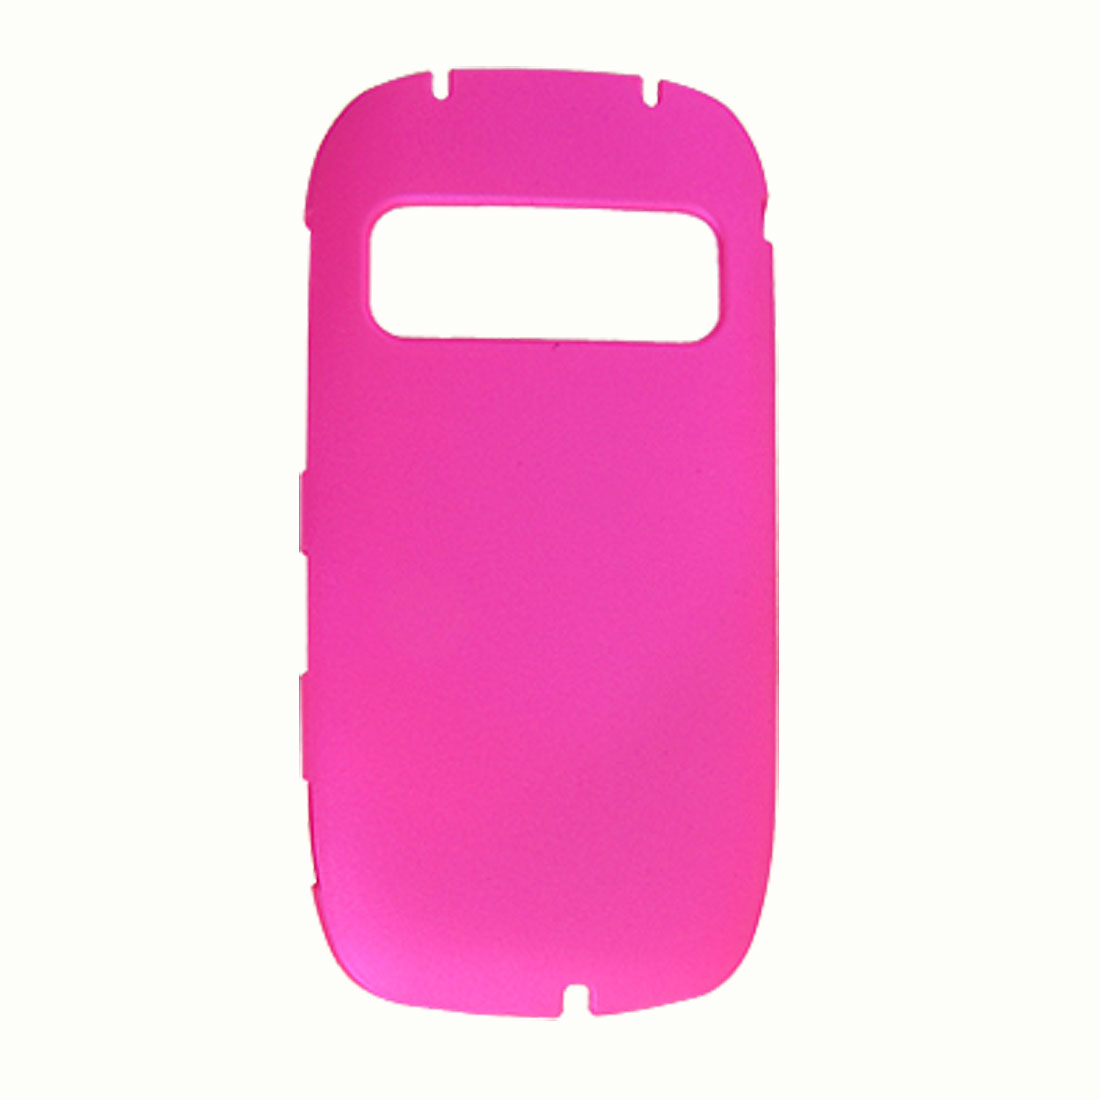 Rubberized Plastic Amaranth Pink Back Cover for Nokia C7